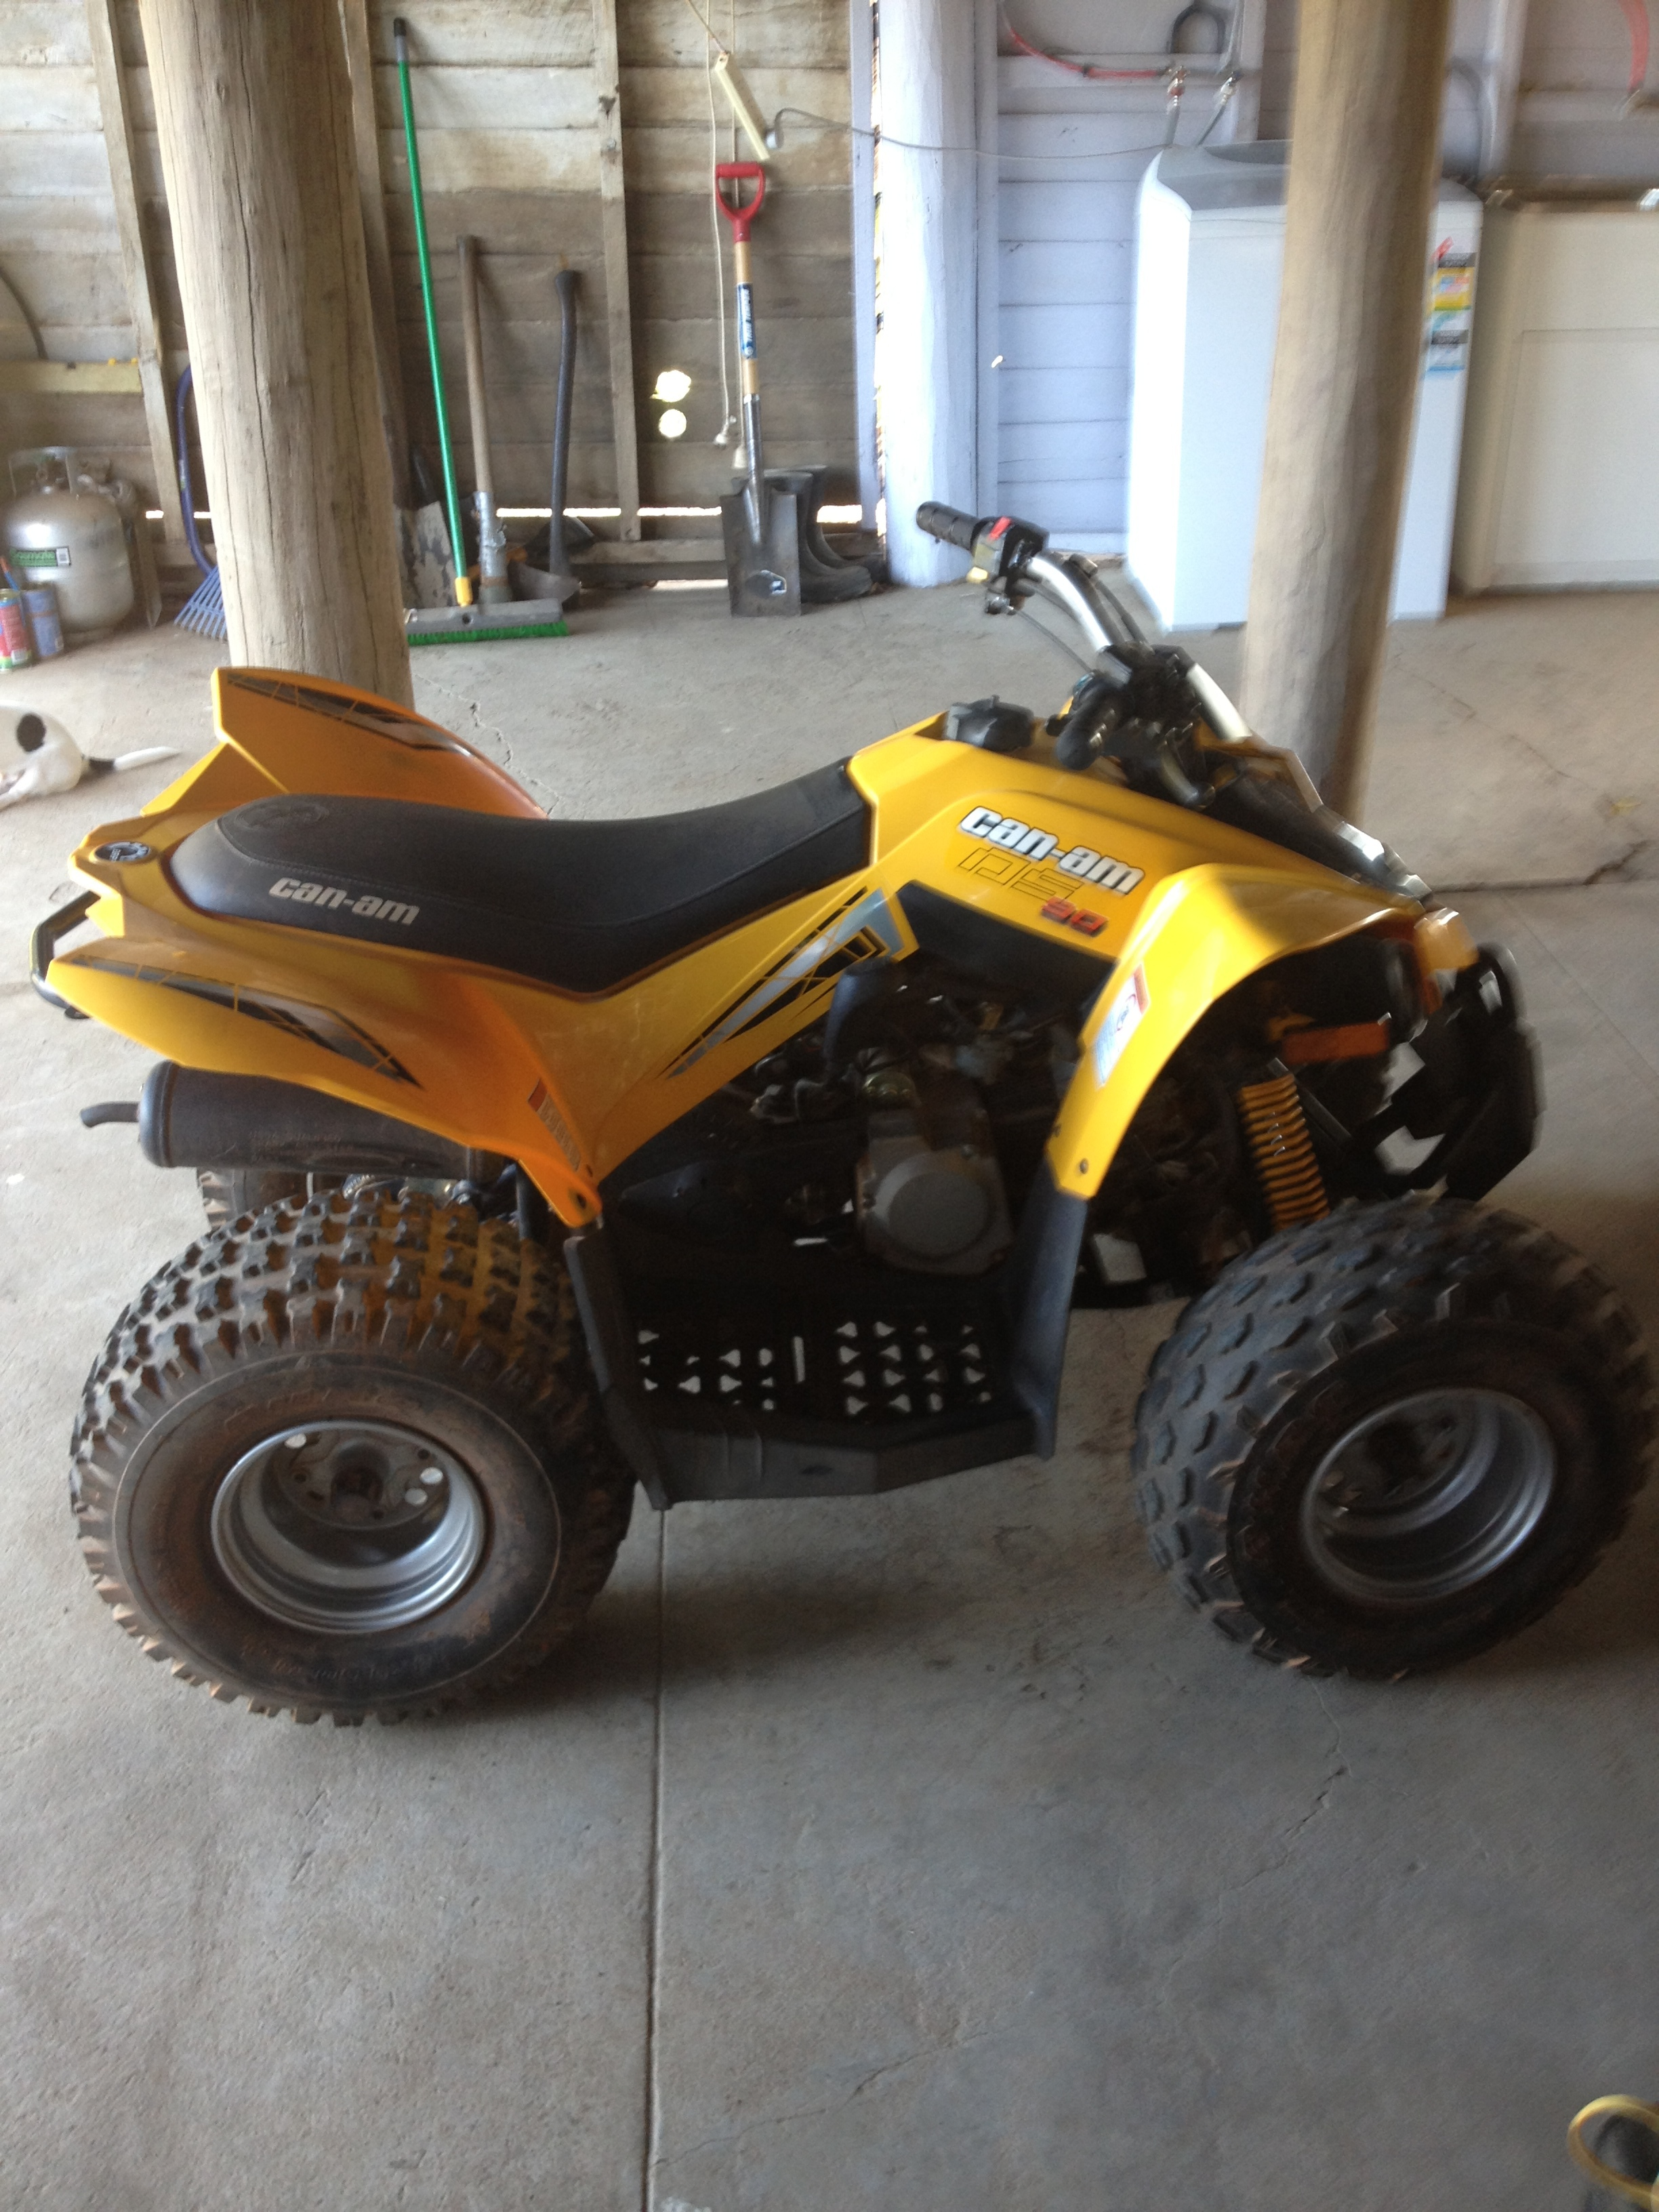 2009 can-am Excellent Condition Price Negotiable Call Ester:  Mobile:  0437445521